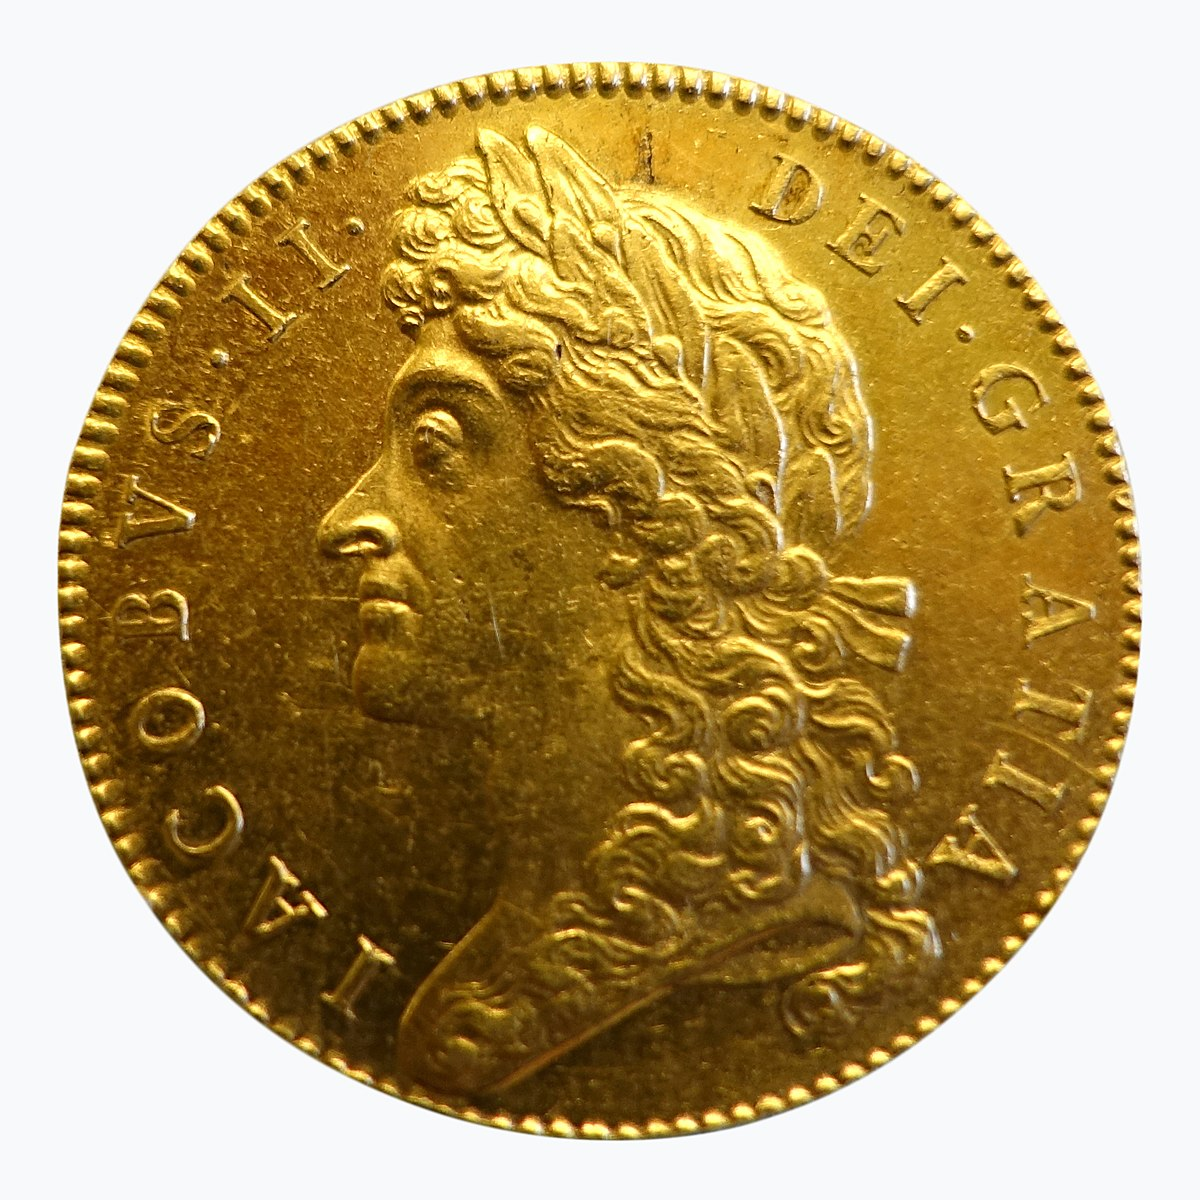 1807 2 pound coin price